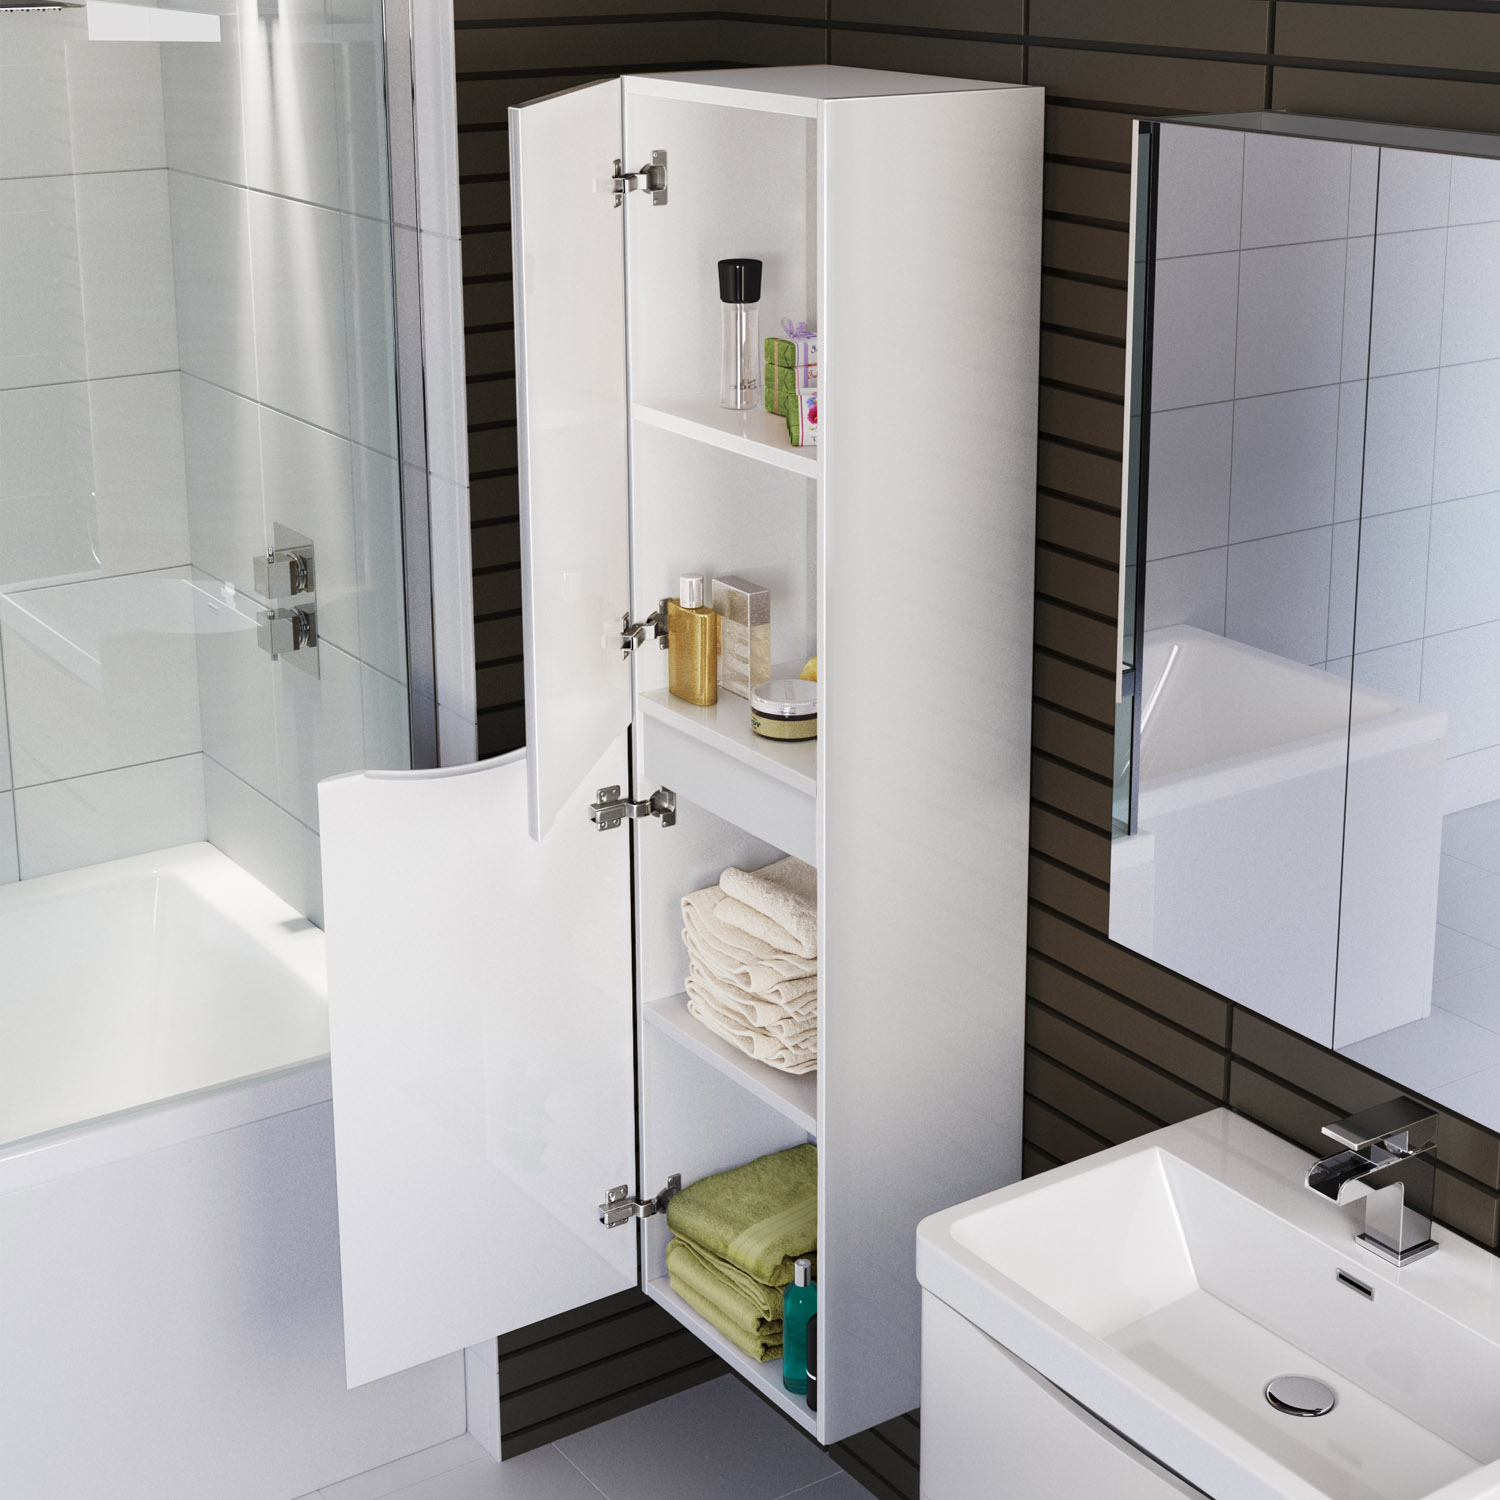 1400mm wall mounted tall bathroom storagte cabinet with soft close